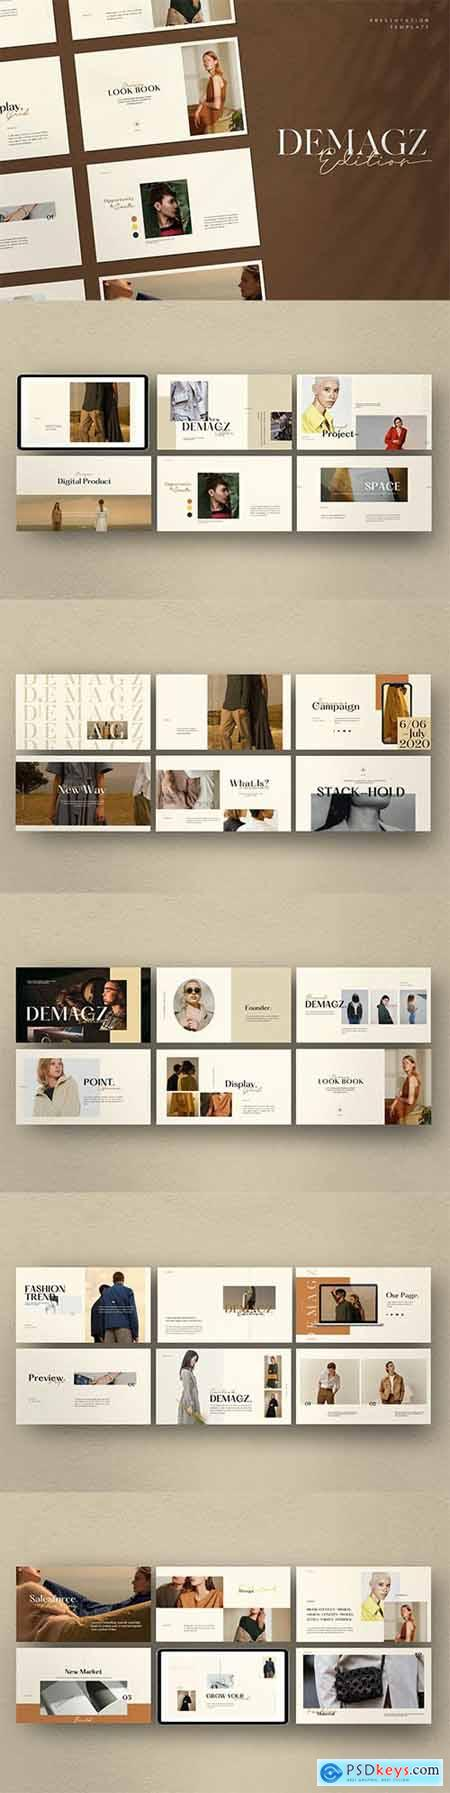 Demagz - Business Marketing Powerpoint, Keynote and Google Slides